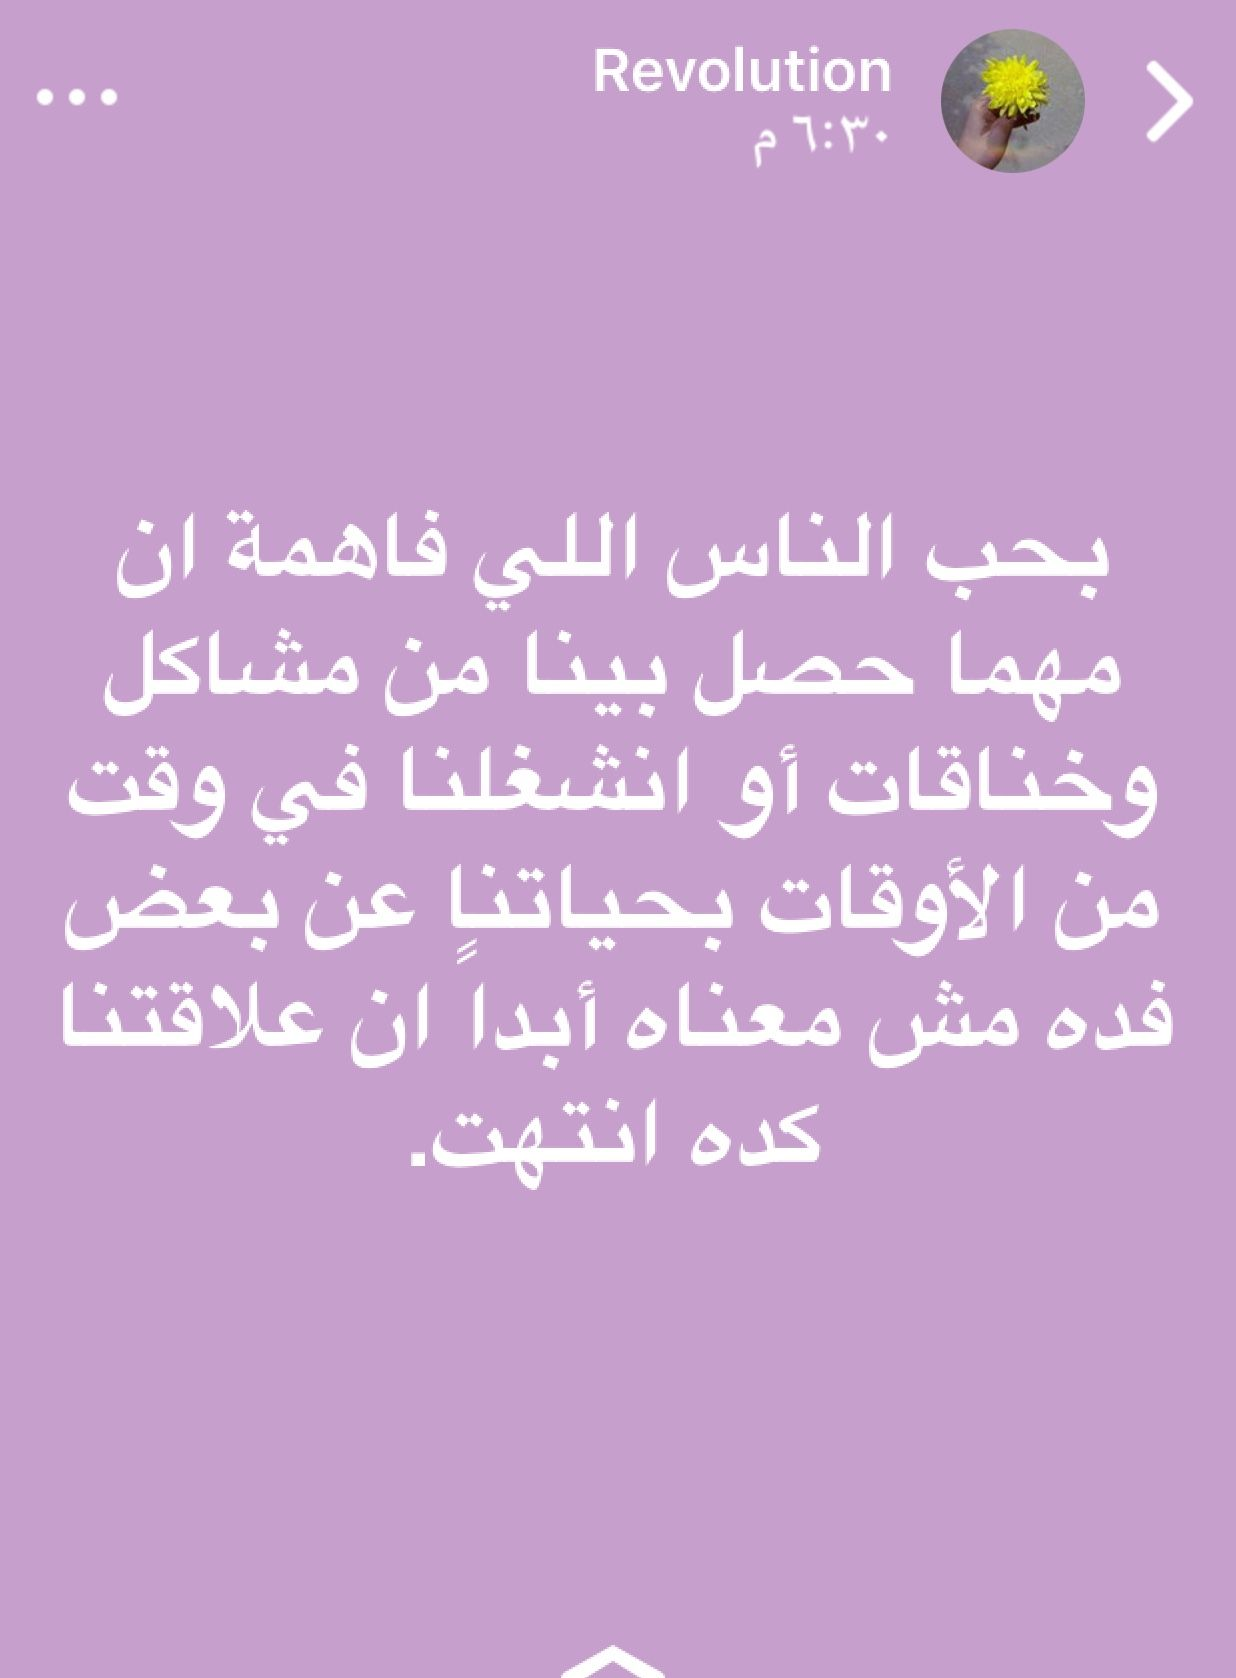 Pin By Tasneem Said On خواطر Quotes Feelings Quotes Calligraphy